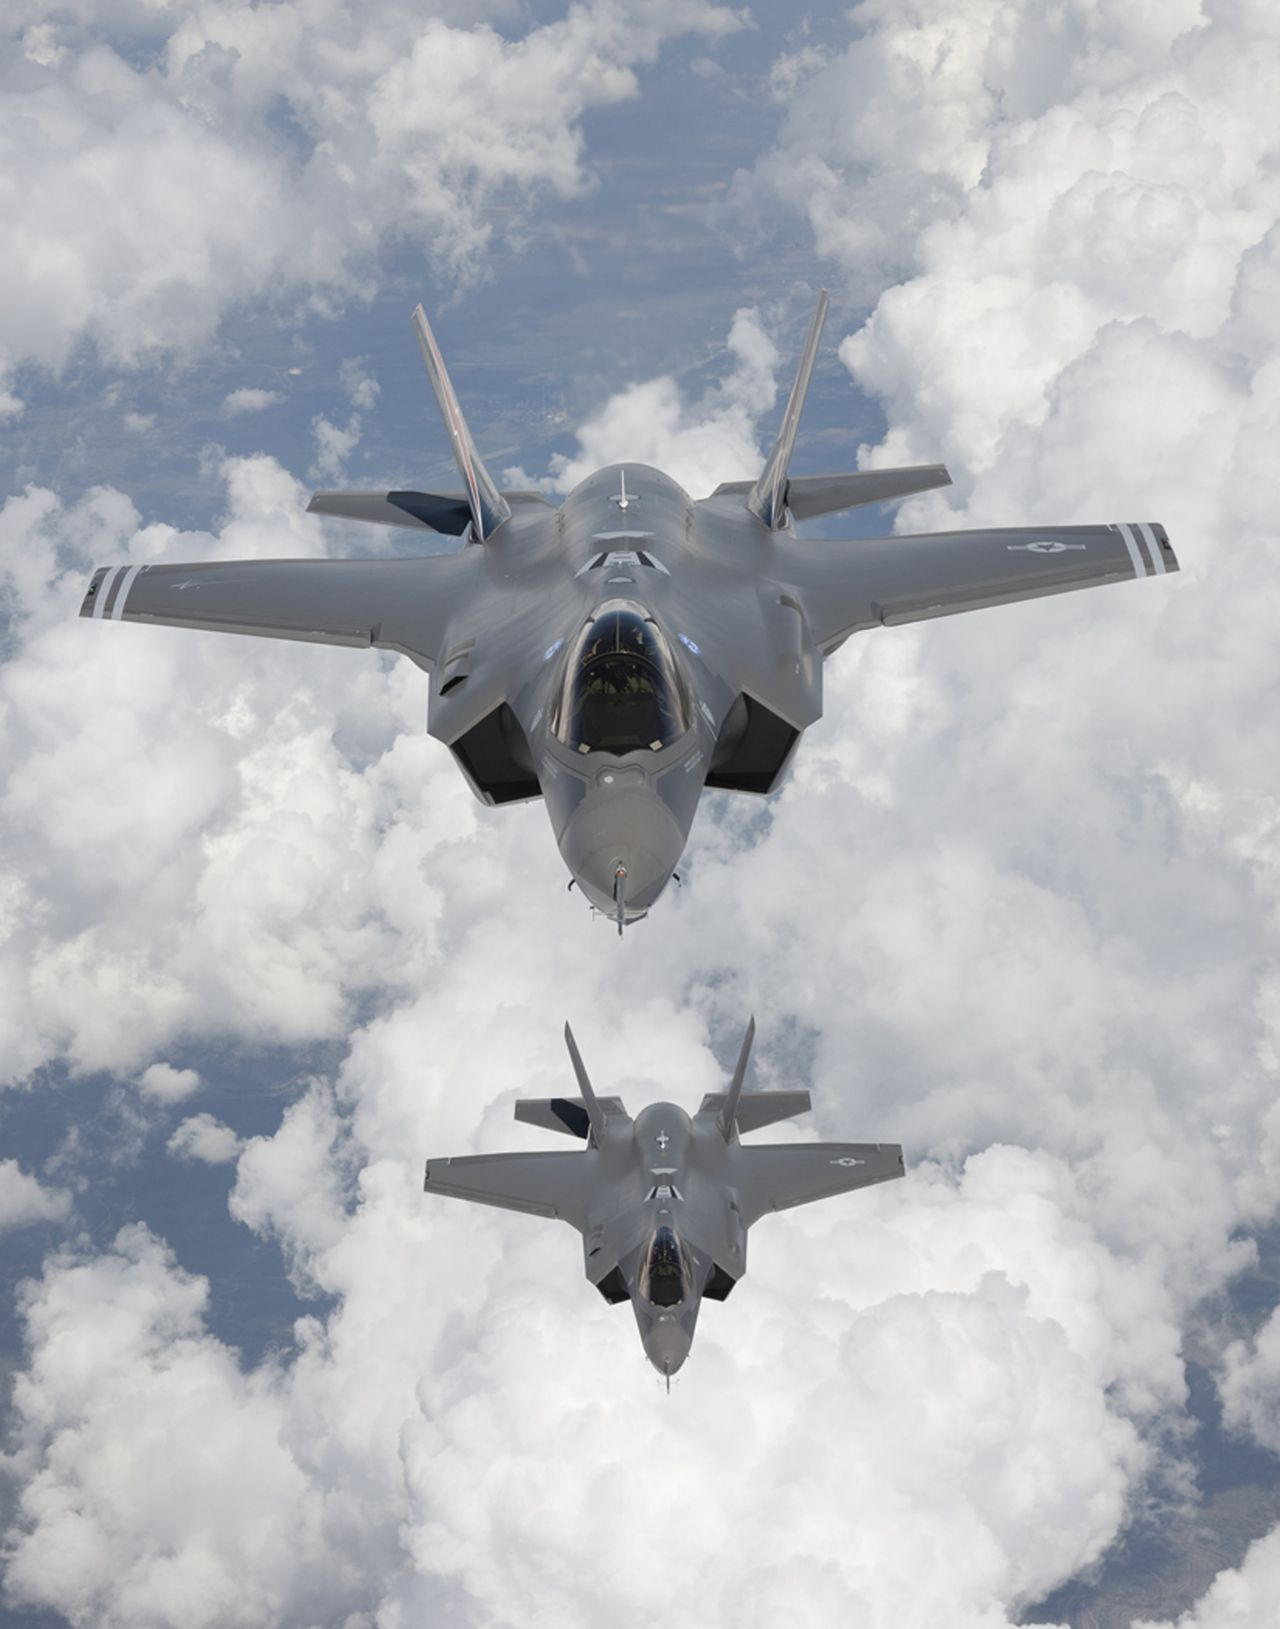 """Two F-35 Lightning II, also known as the Joint Strike Fighter (JSF), fighter aircraft are seen as they arrive at Edwards Air Force Base in California in this May 2010 file photograph. The Pentagon on September 22, 2010 said it reached a """"fixed-price"""" agreement with Lockheed Martin Corp for a fourth batch of F-35 fighter jets, wrapping up months of negotiations. REUTERS/Tom Reynolds/Lockheed Martin Corp/Handout (UNITED STATES - Tags: MILITARY BUSINESS) FOR EDITORIAL USE ONLY. NOT FOR SALE FOR MARKETING OR ADVERTISING CAMPAIGNS. THIS IMAGE HAS BEEN SUPPLIED BY A THIRD PARTY. IT IS DISTRIBUTED, EXACTLY AS RECEIVED BY REUTERS, AS A SERVICE TO CLIENTS"""